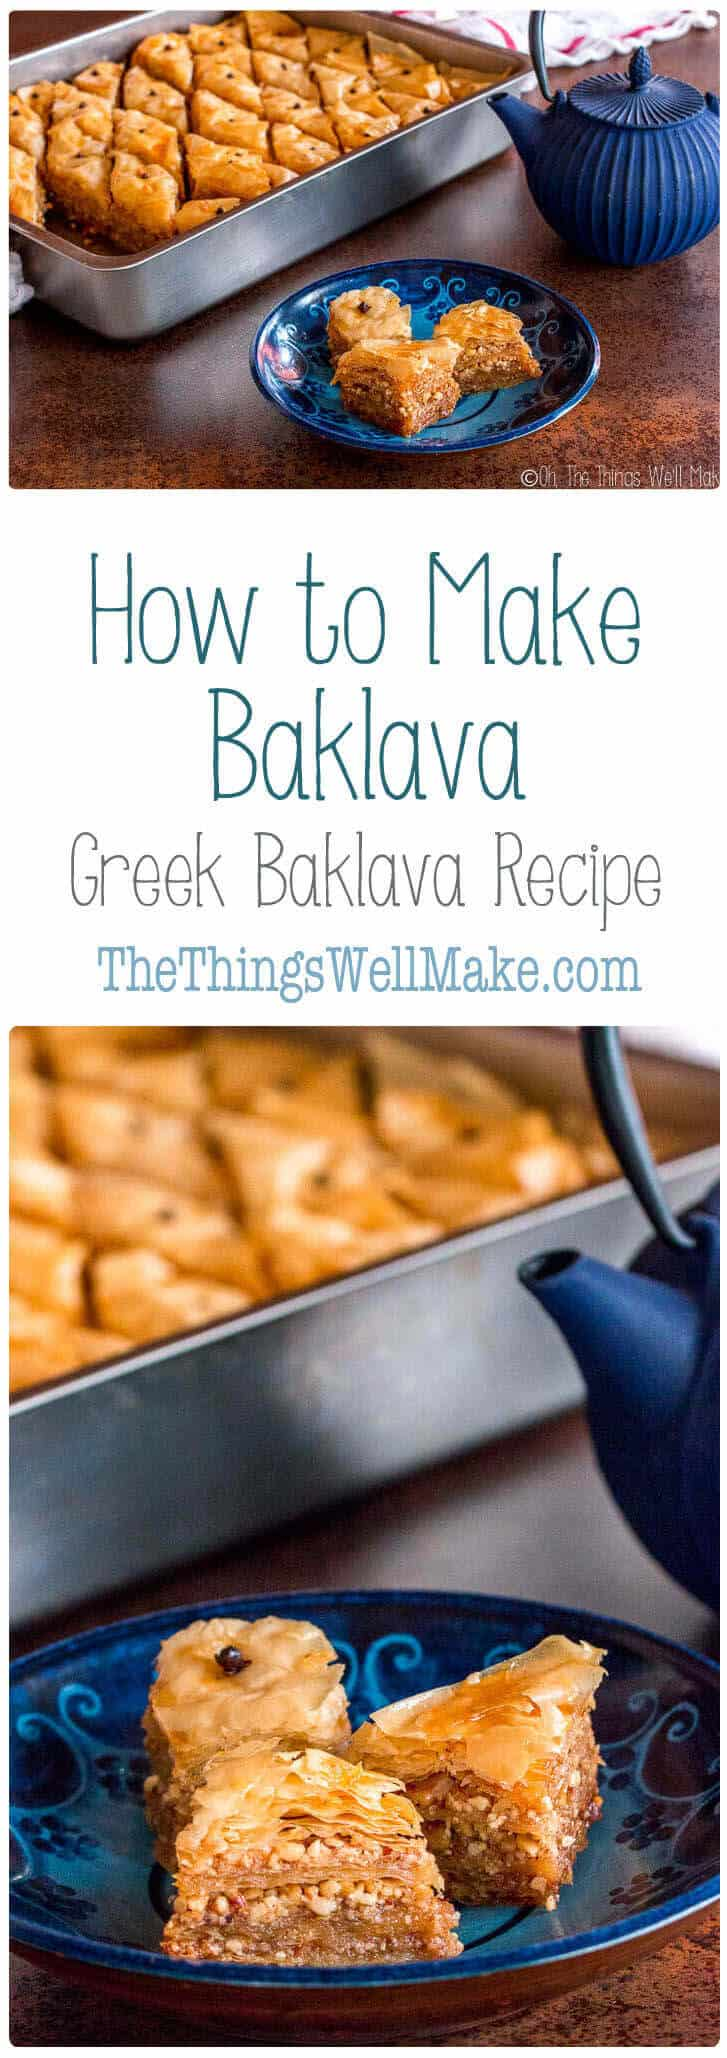 Perfect for the holidays, baklava is a sweet, flaky and impressive looking dessert that is actually simple to make and sure to please your guests. Learn how to make baklava with this Greek Baklava recipe. #baklava #greek #recipes